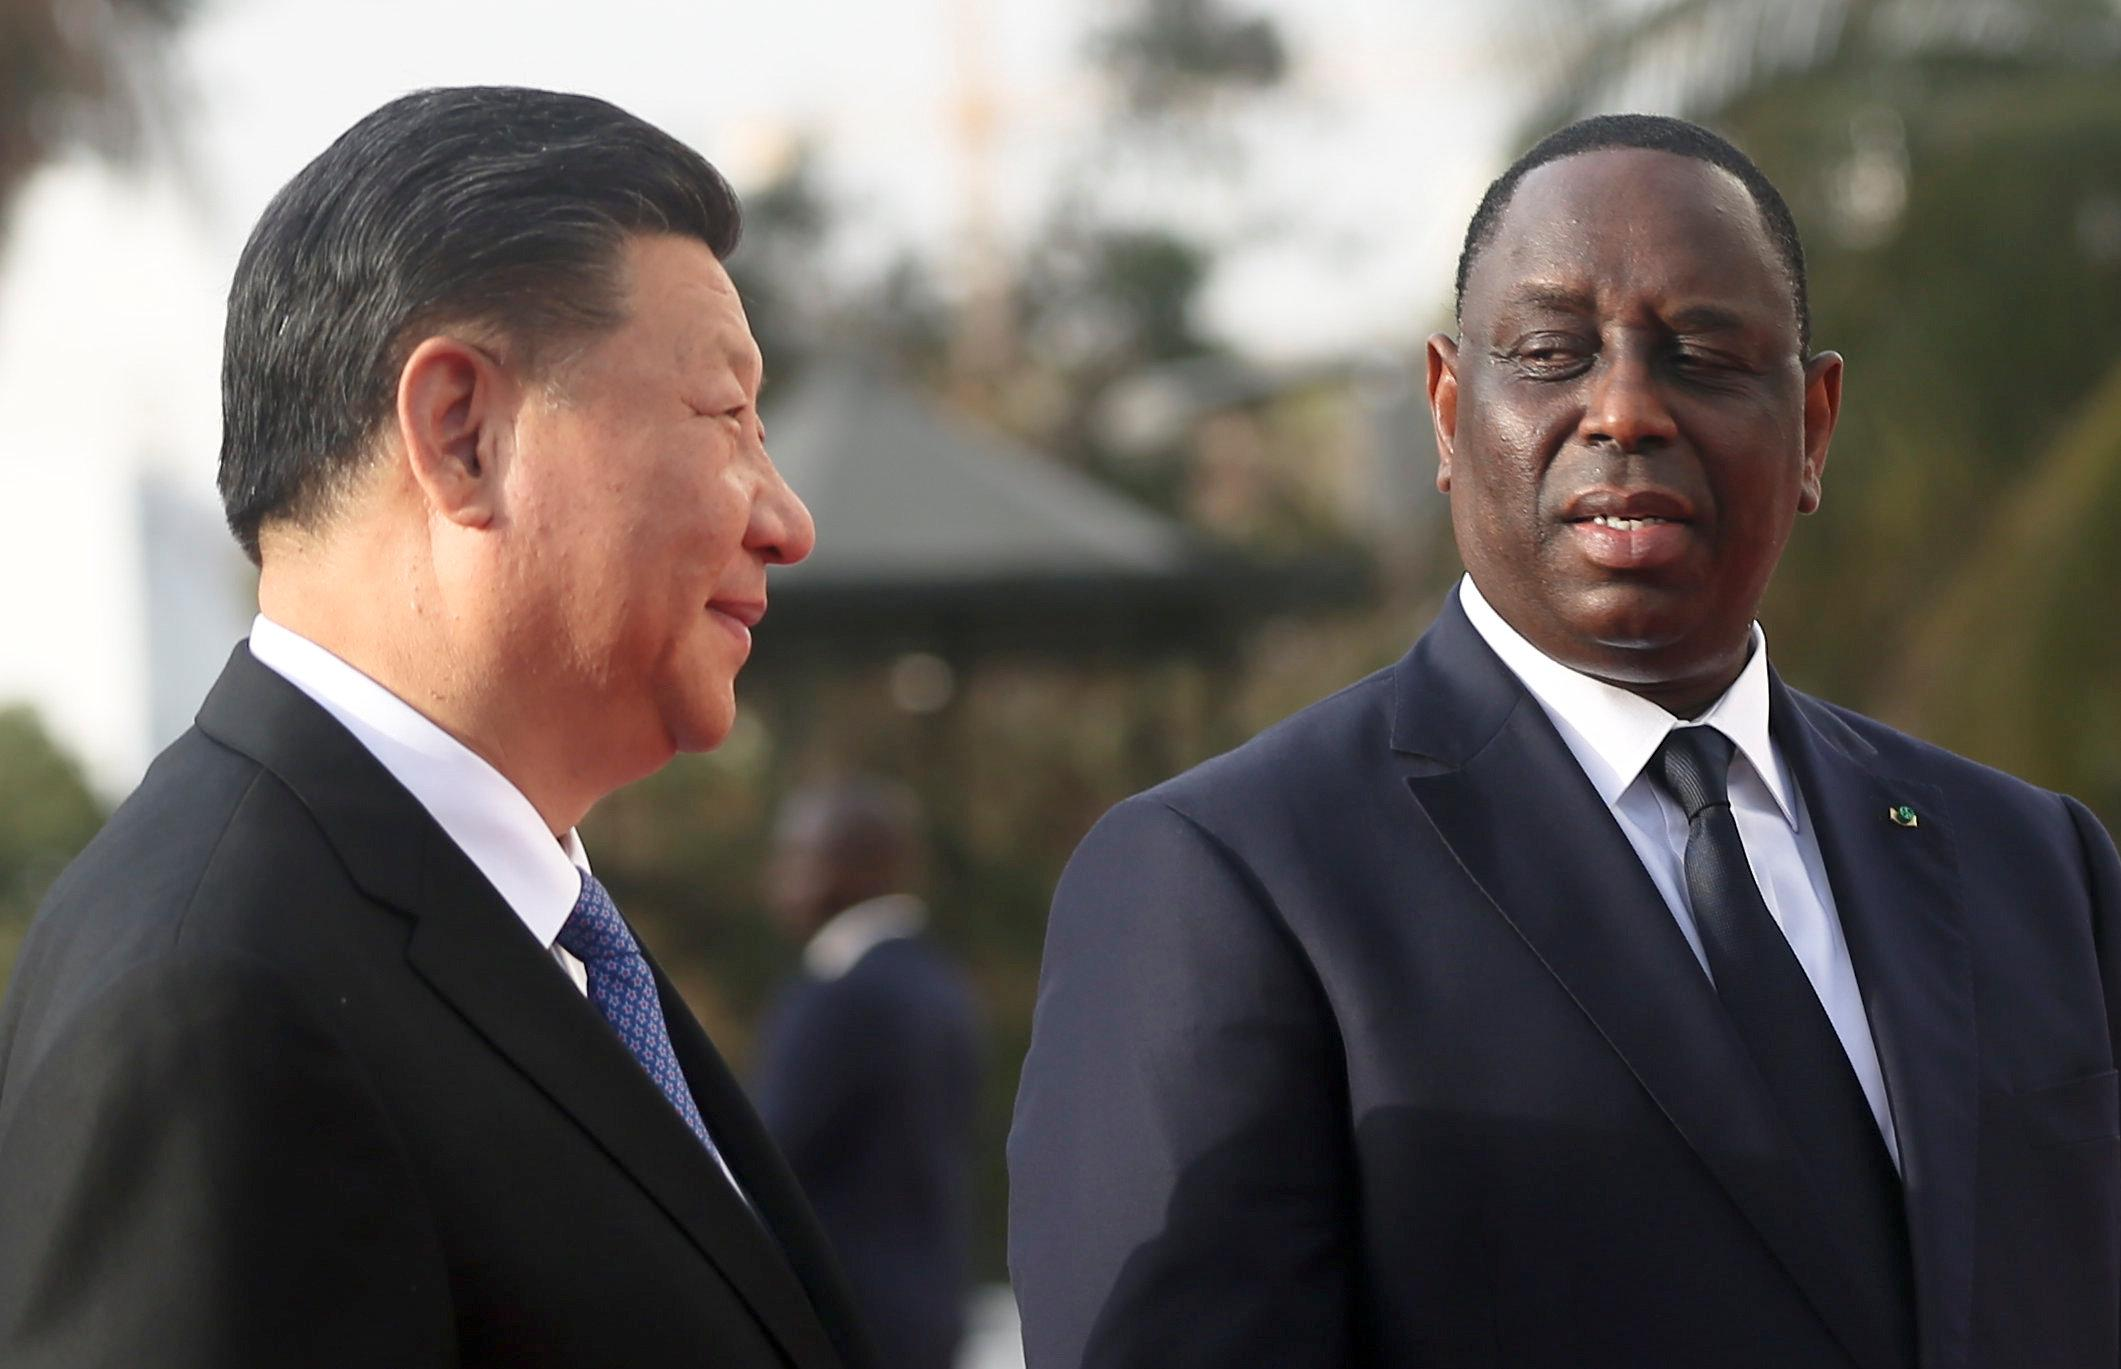 Chinese President Xi Jinping talks with Senegal's President Macky Sall at the Presidential Palace during his visit to Dakar, Senegal July 21, 2018. Mikal McAllister